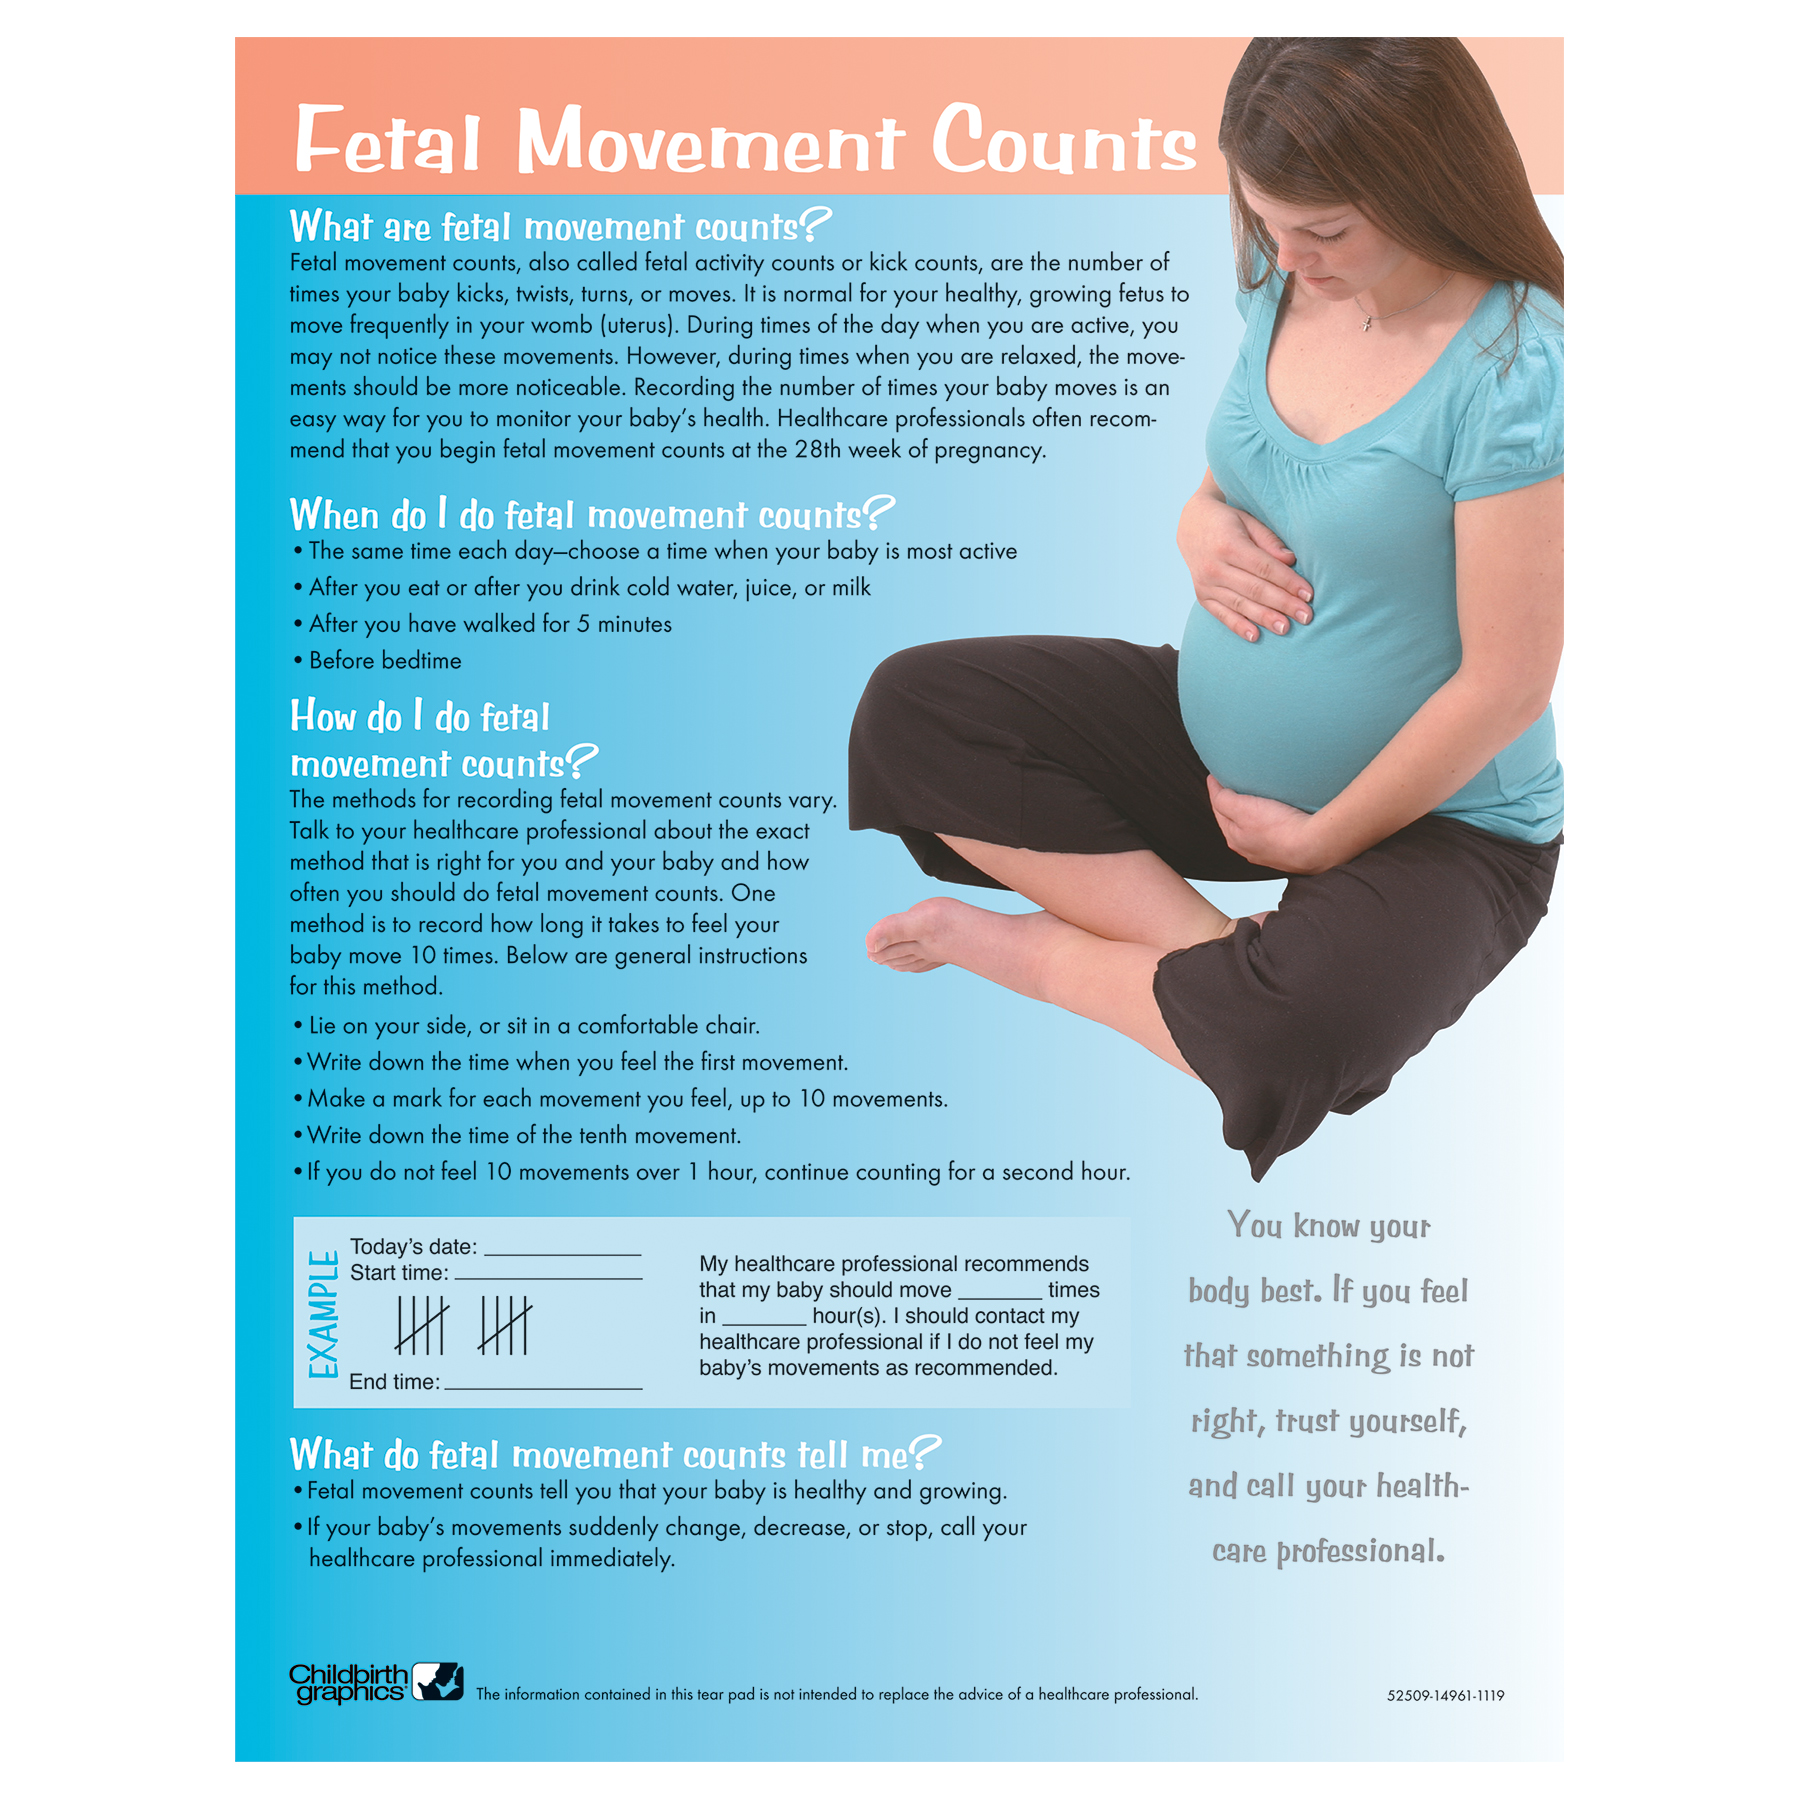 Fetal Movement Counts Tear Pad for pregnancy education from Childbirth Graphics with instructions to count foetal kicks, 52509